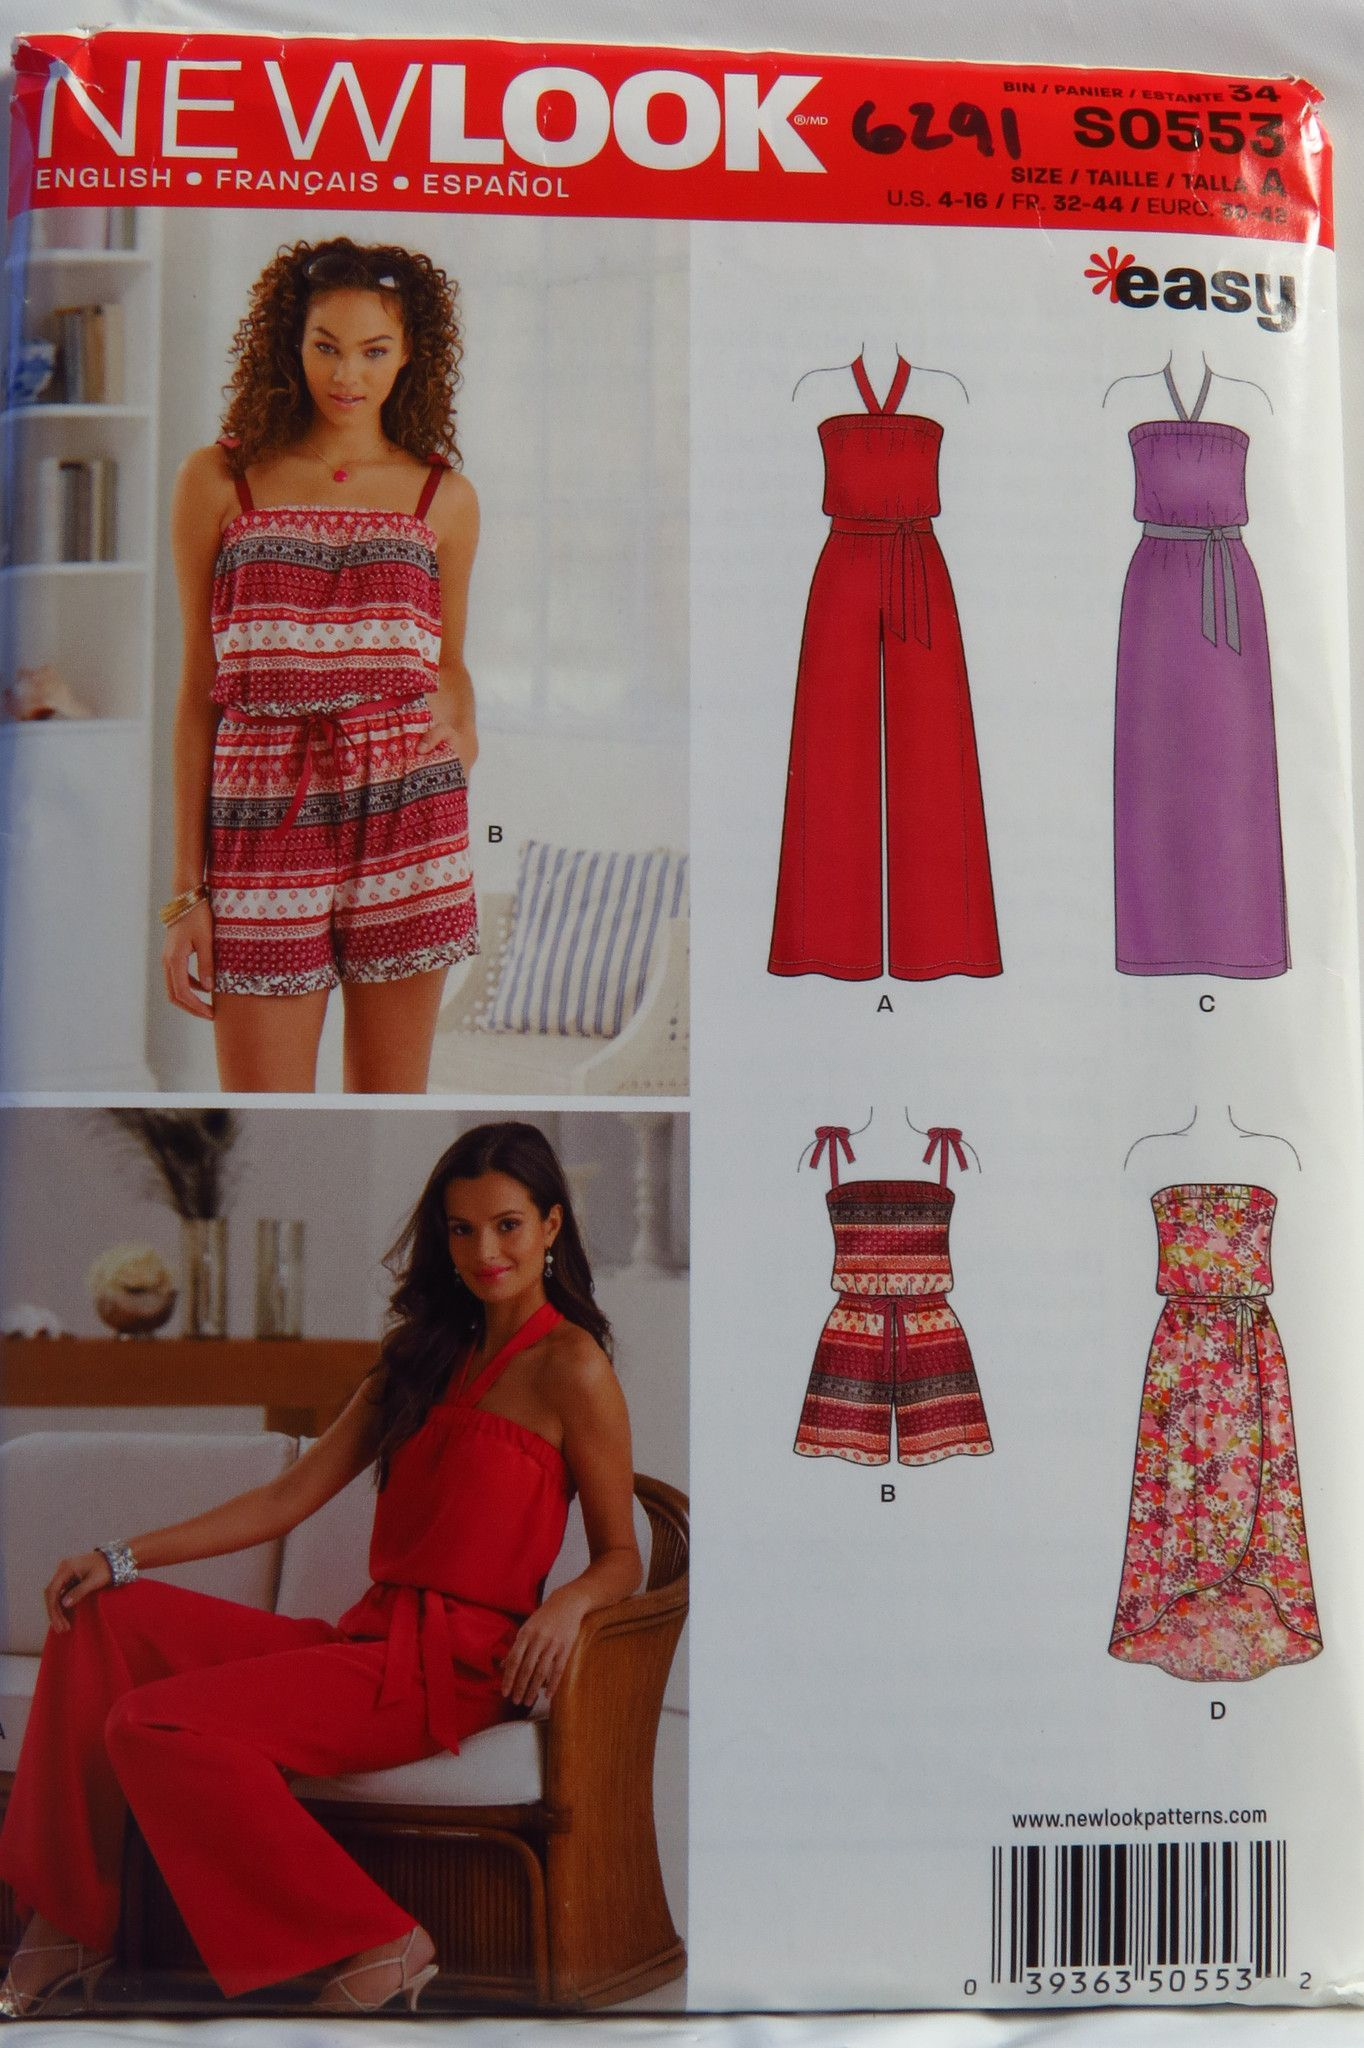 New look missesu jumpsuit and dress each in two lengths in